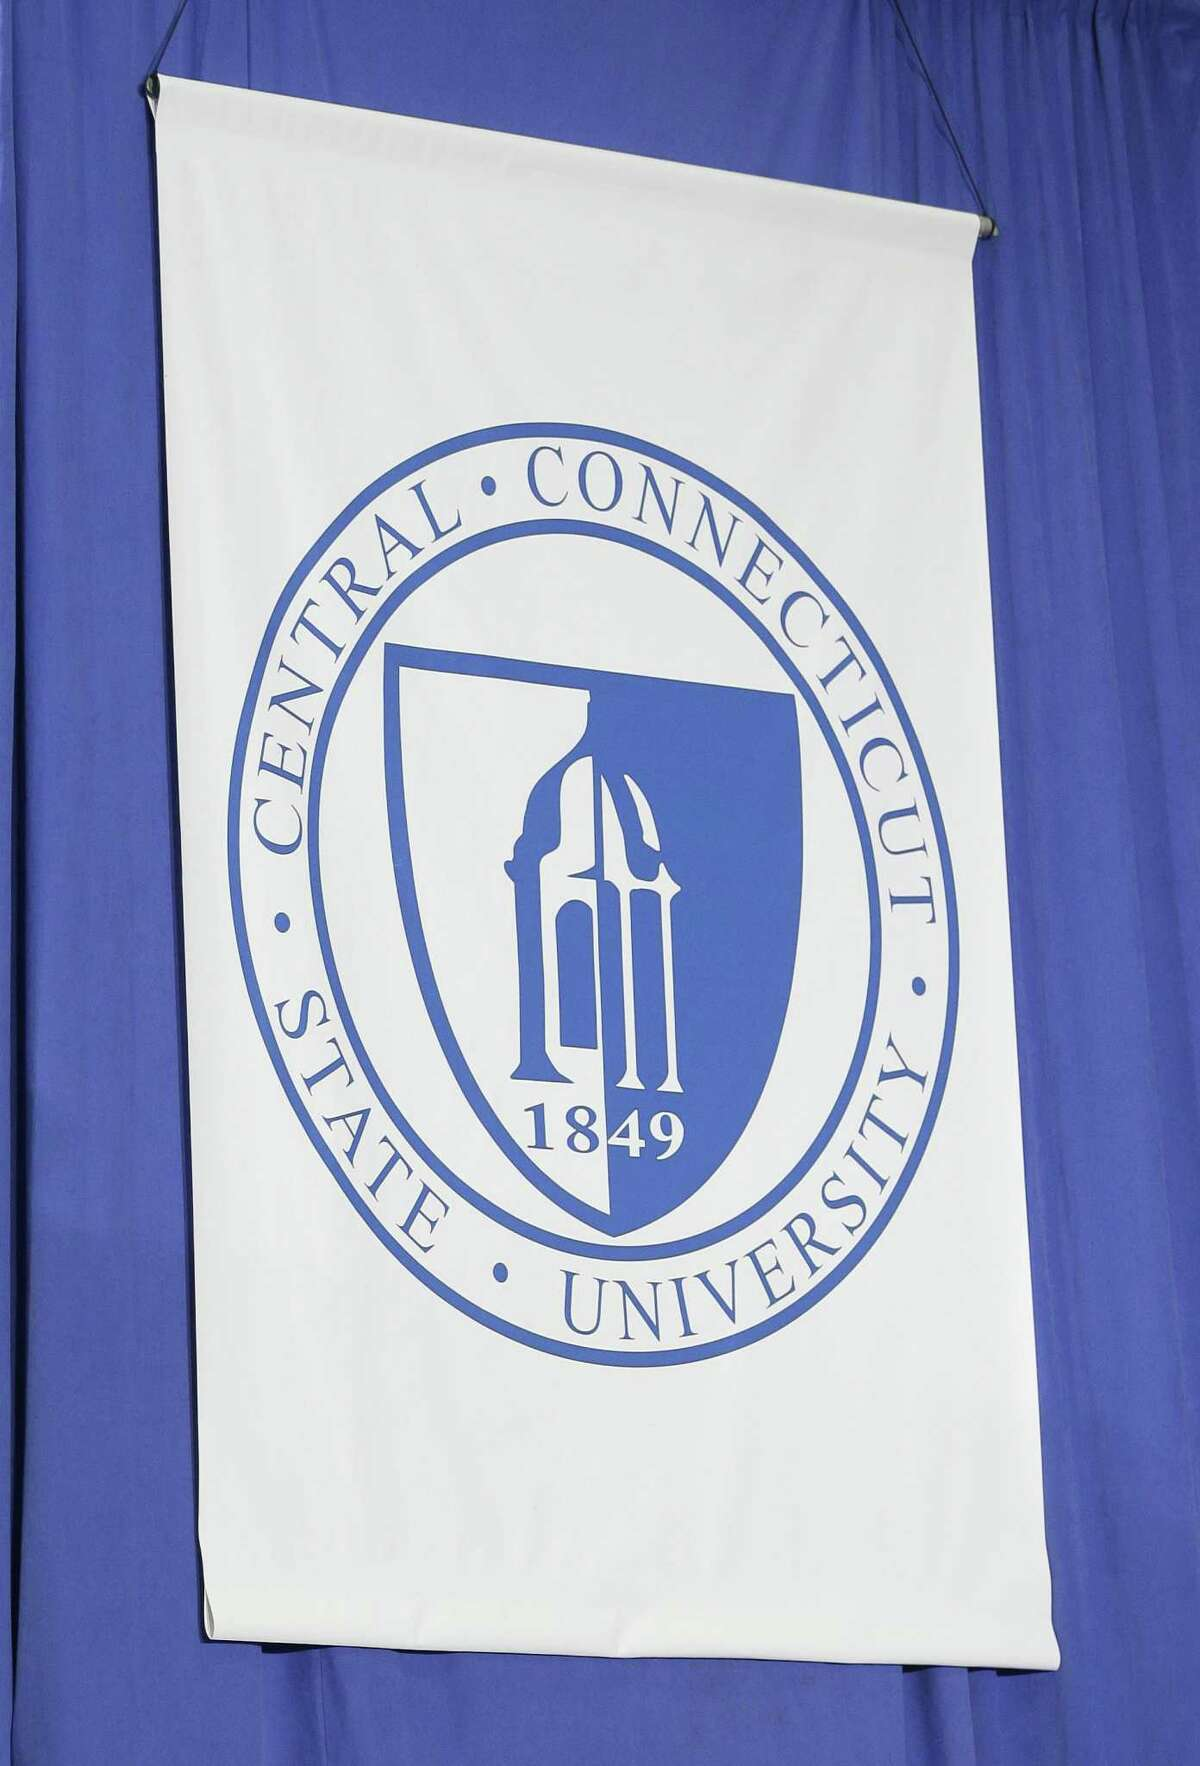 Central Connecticut State University in New Britain